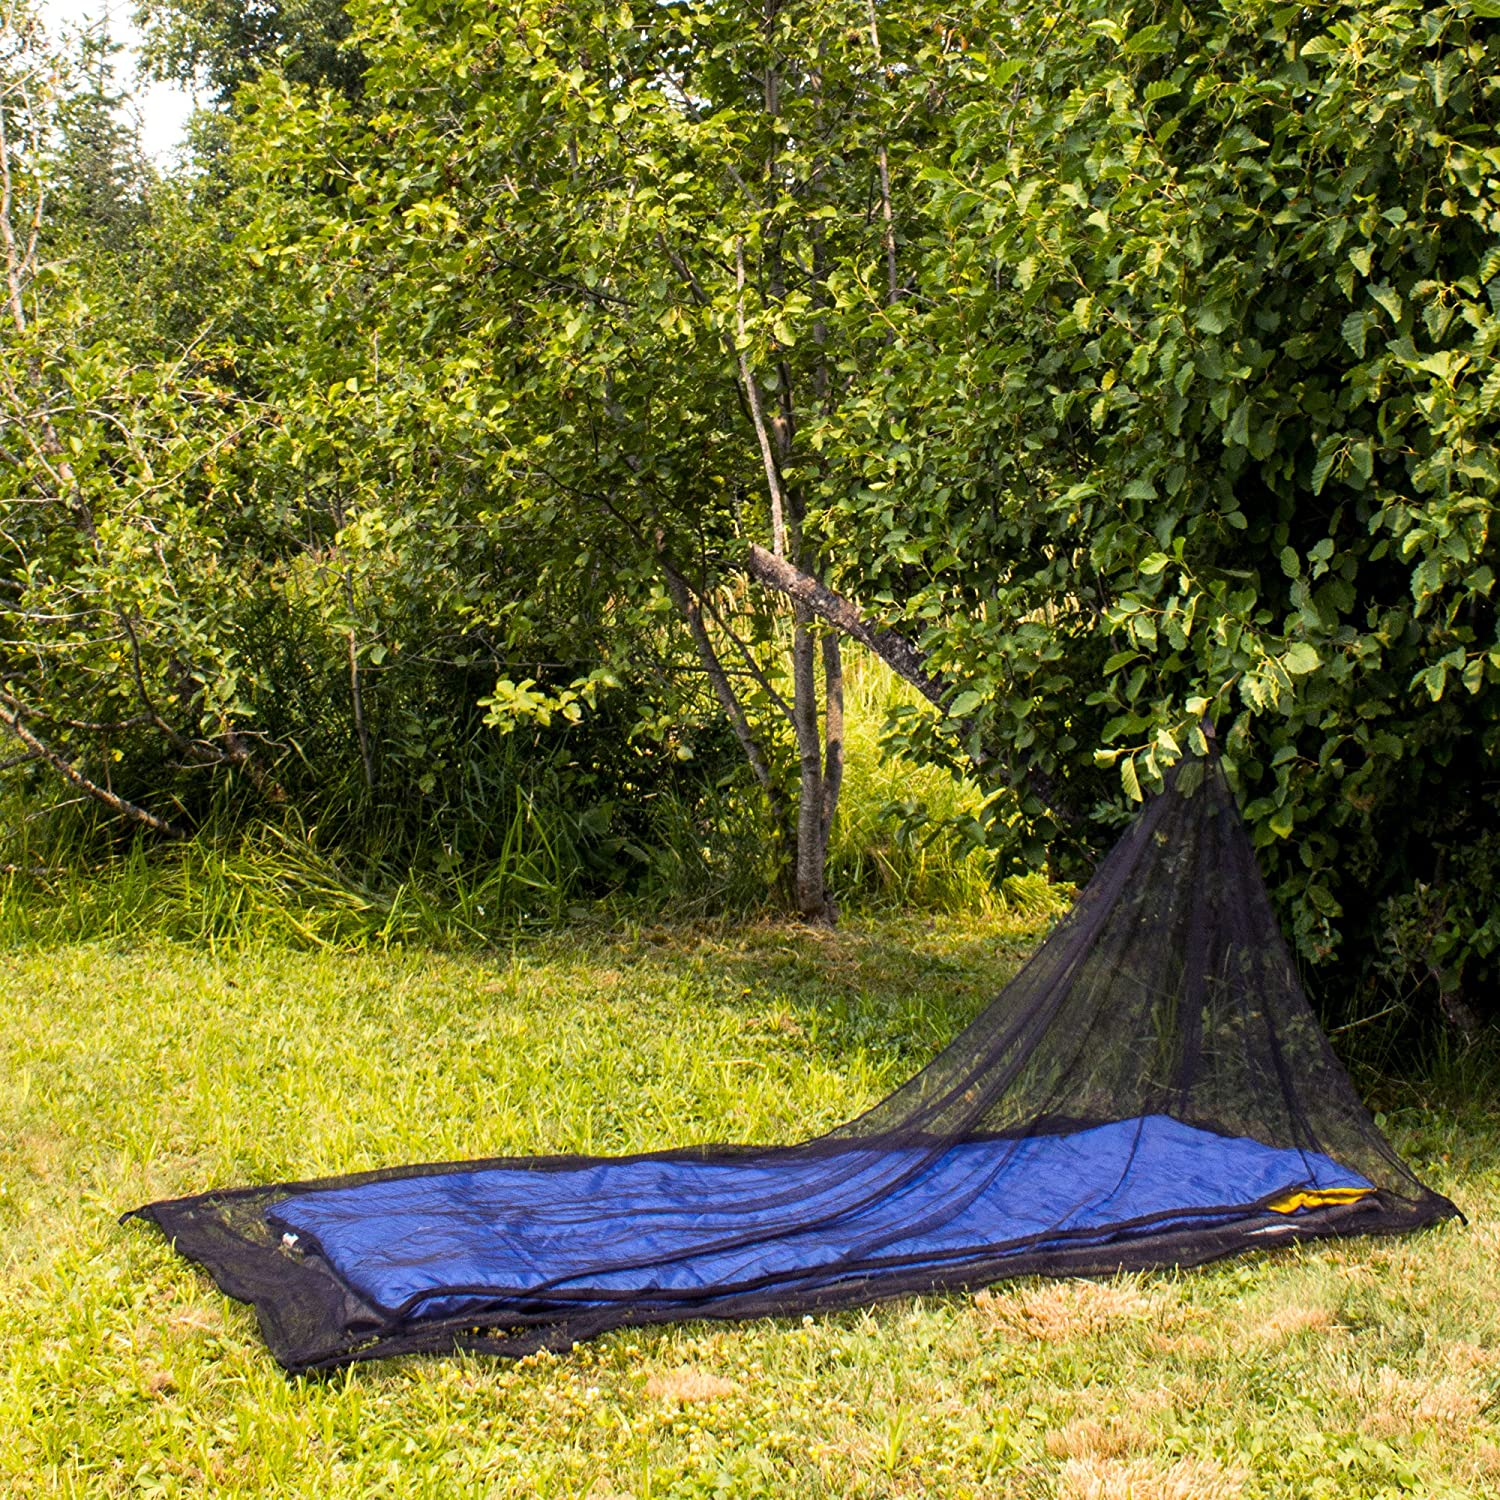 amazon     mosquito camping insect   with carry bag  pact and lightweight fits sleeping bags bed tent  single    garden  u0026 outdoor amazon     mosquito camping insect   with carry bag  pact      rh   amazon